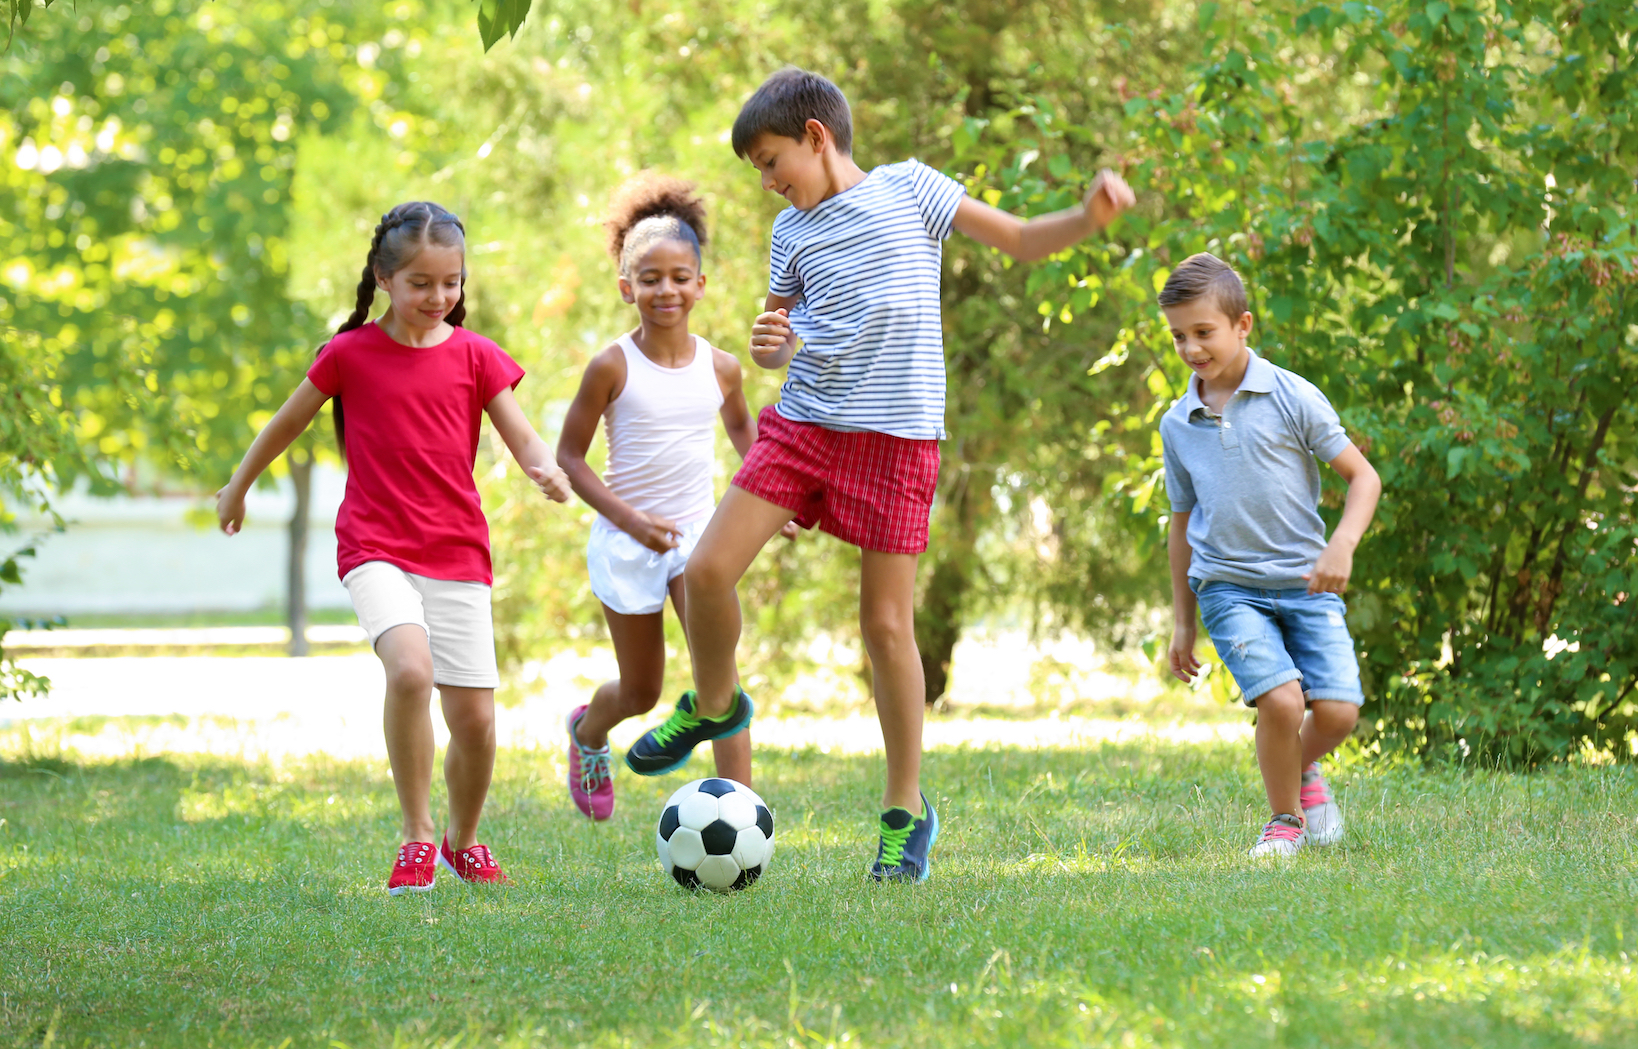 kids now spend twice as much time playing indoors than outdoorskids now spend twice as much time playing indoors than outdoors